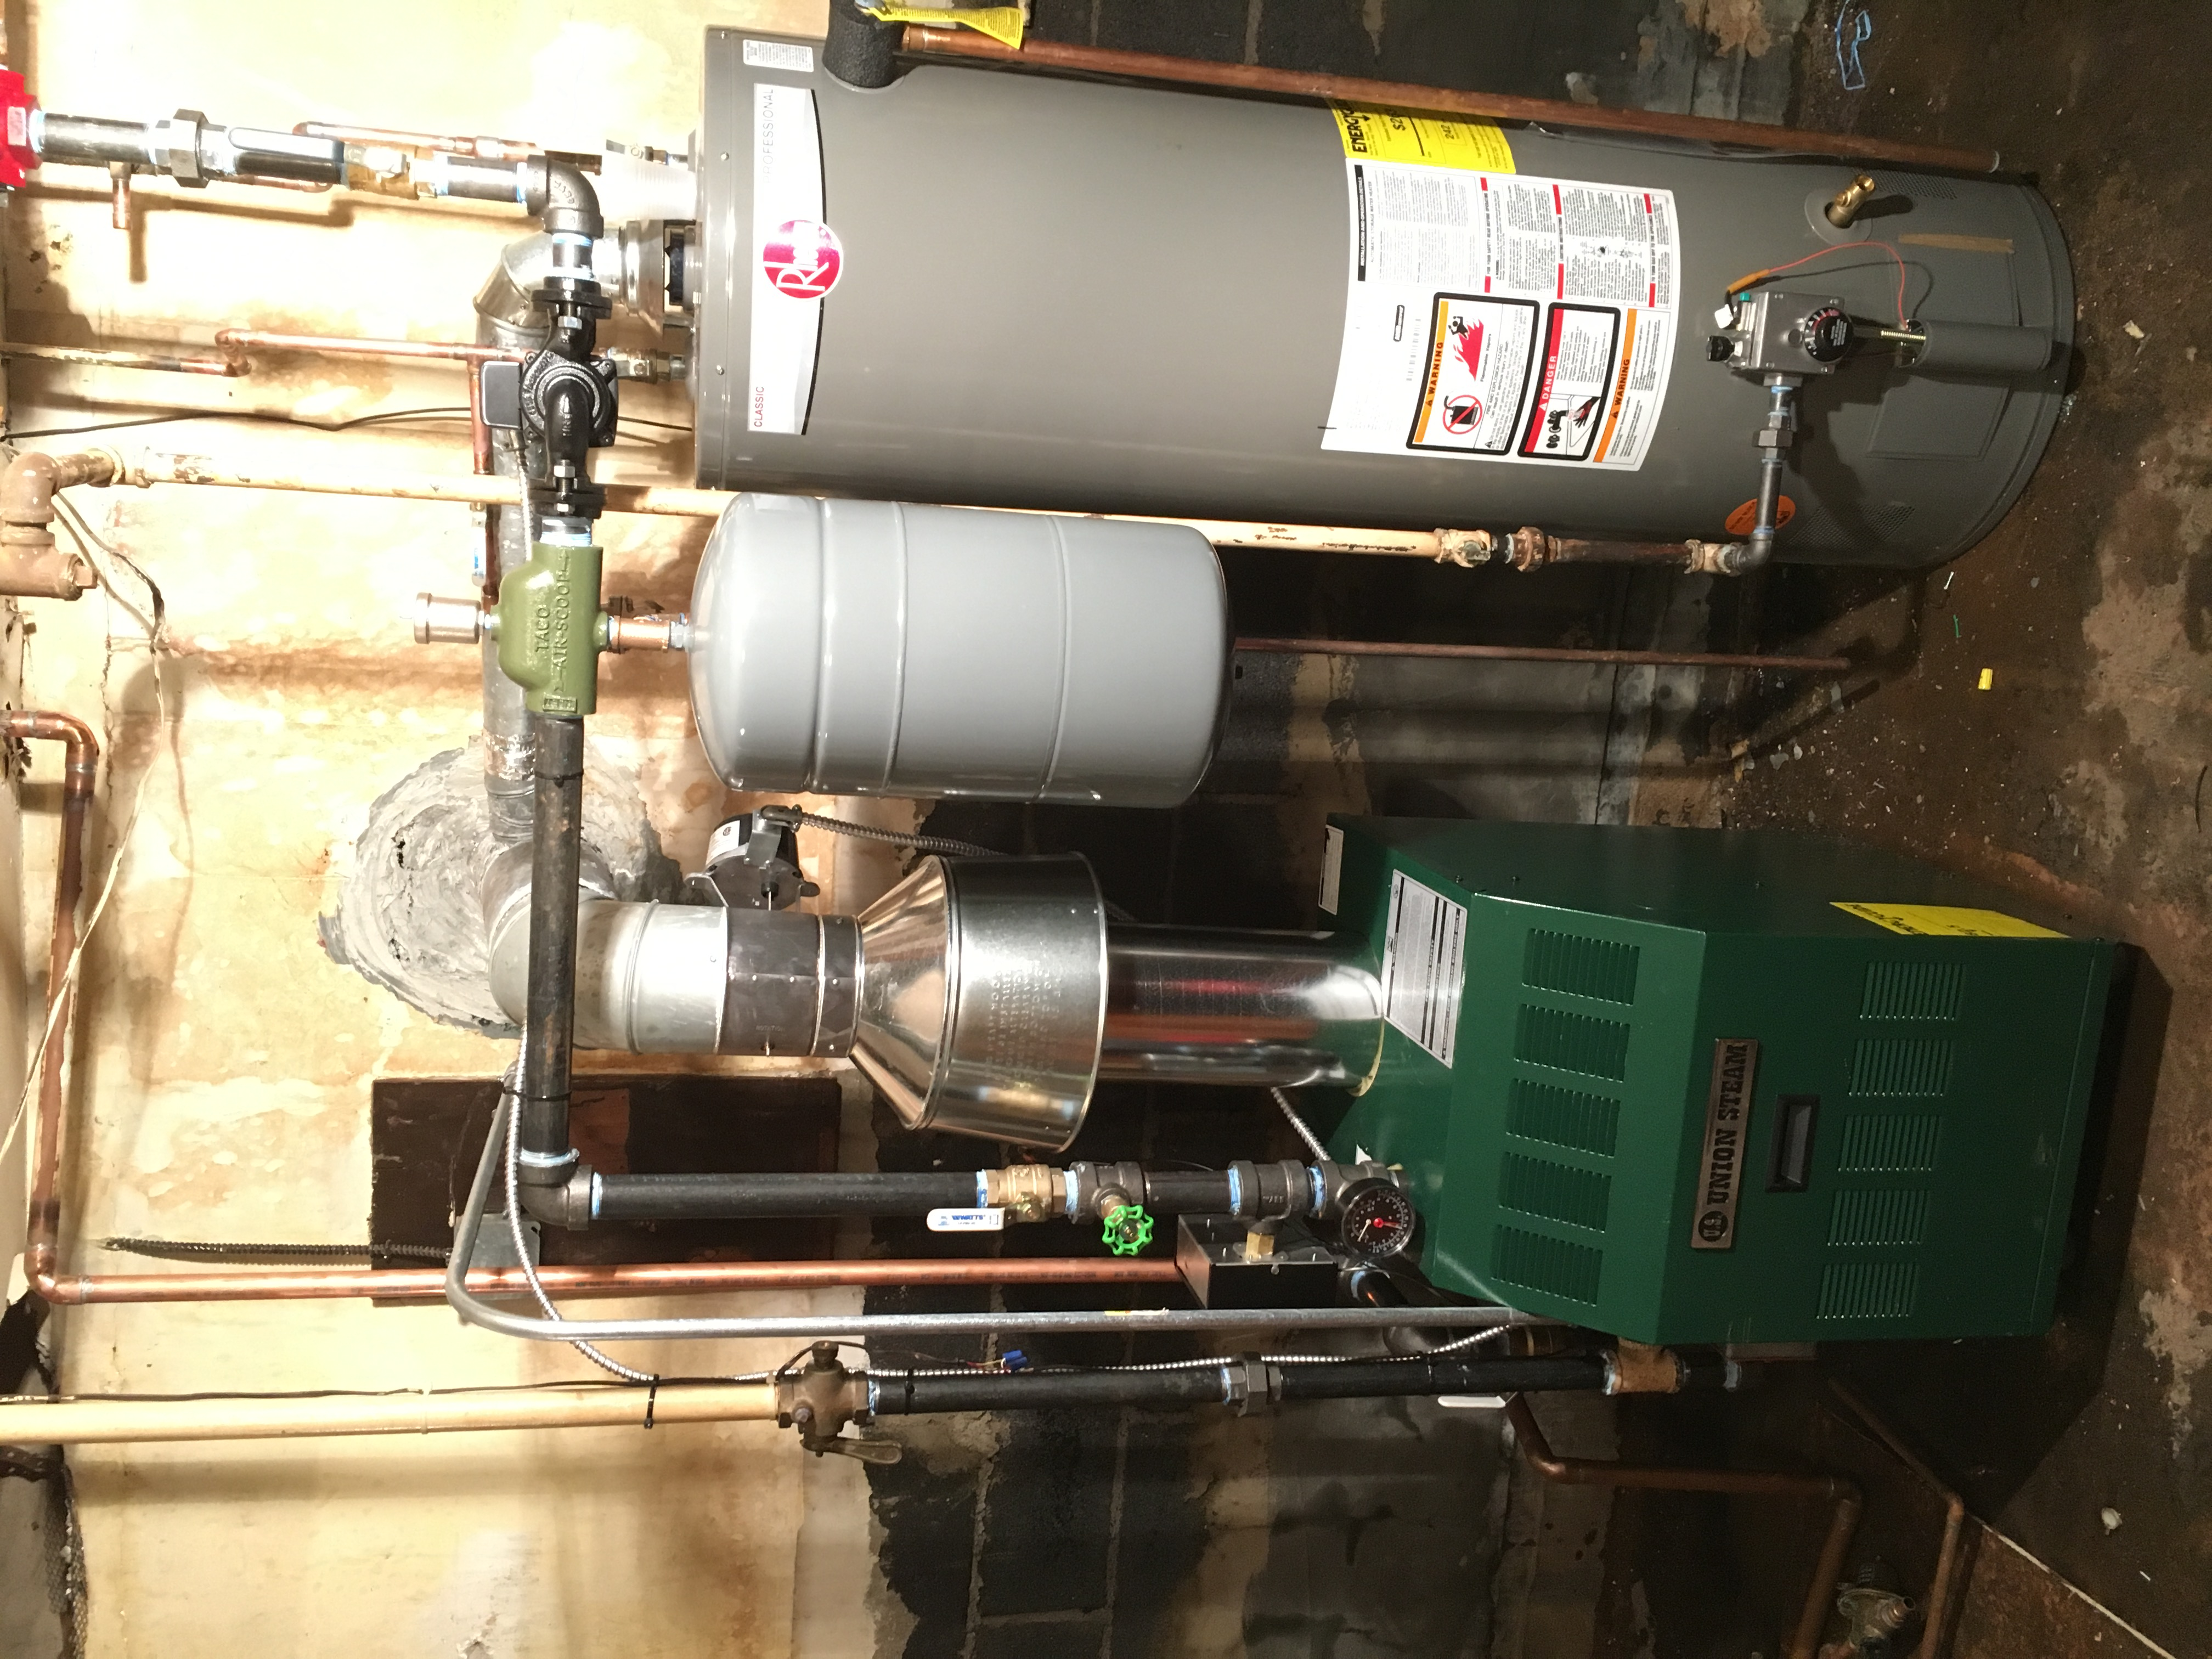 Electric Water Boilers For Homes ~ Water boiler beverage equipment heating but no hot